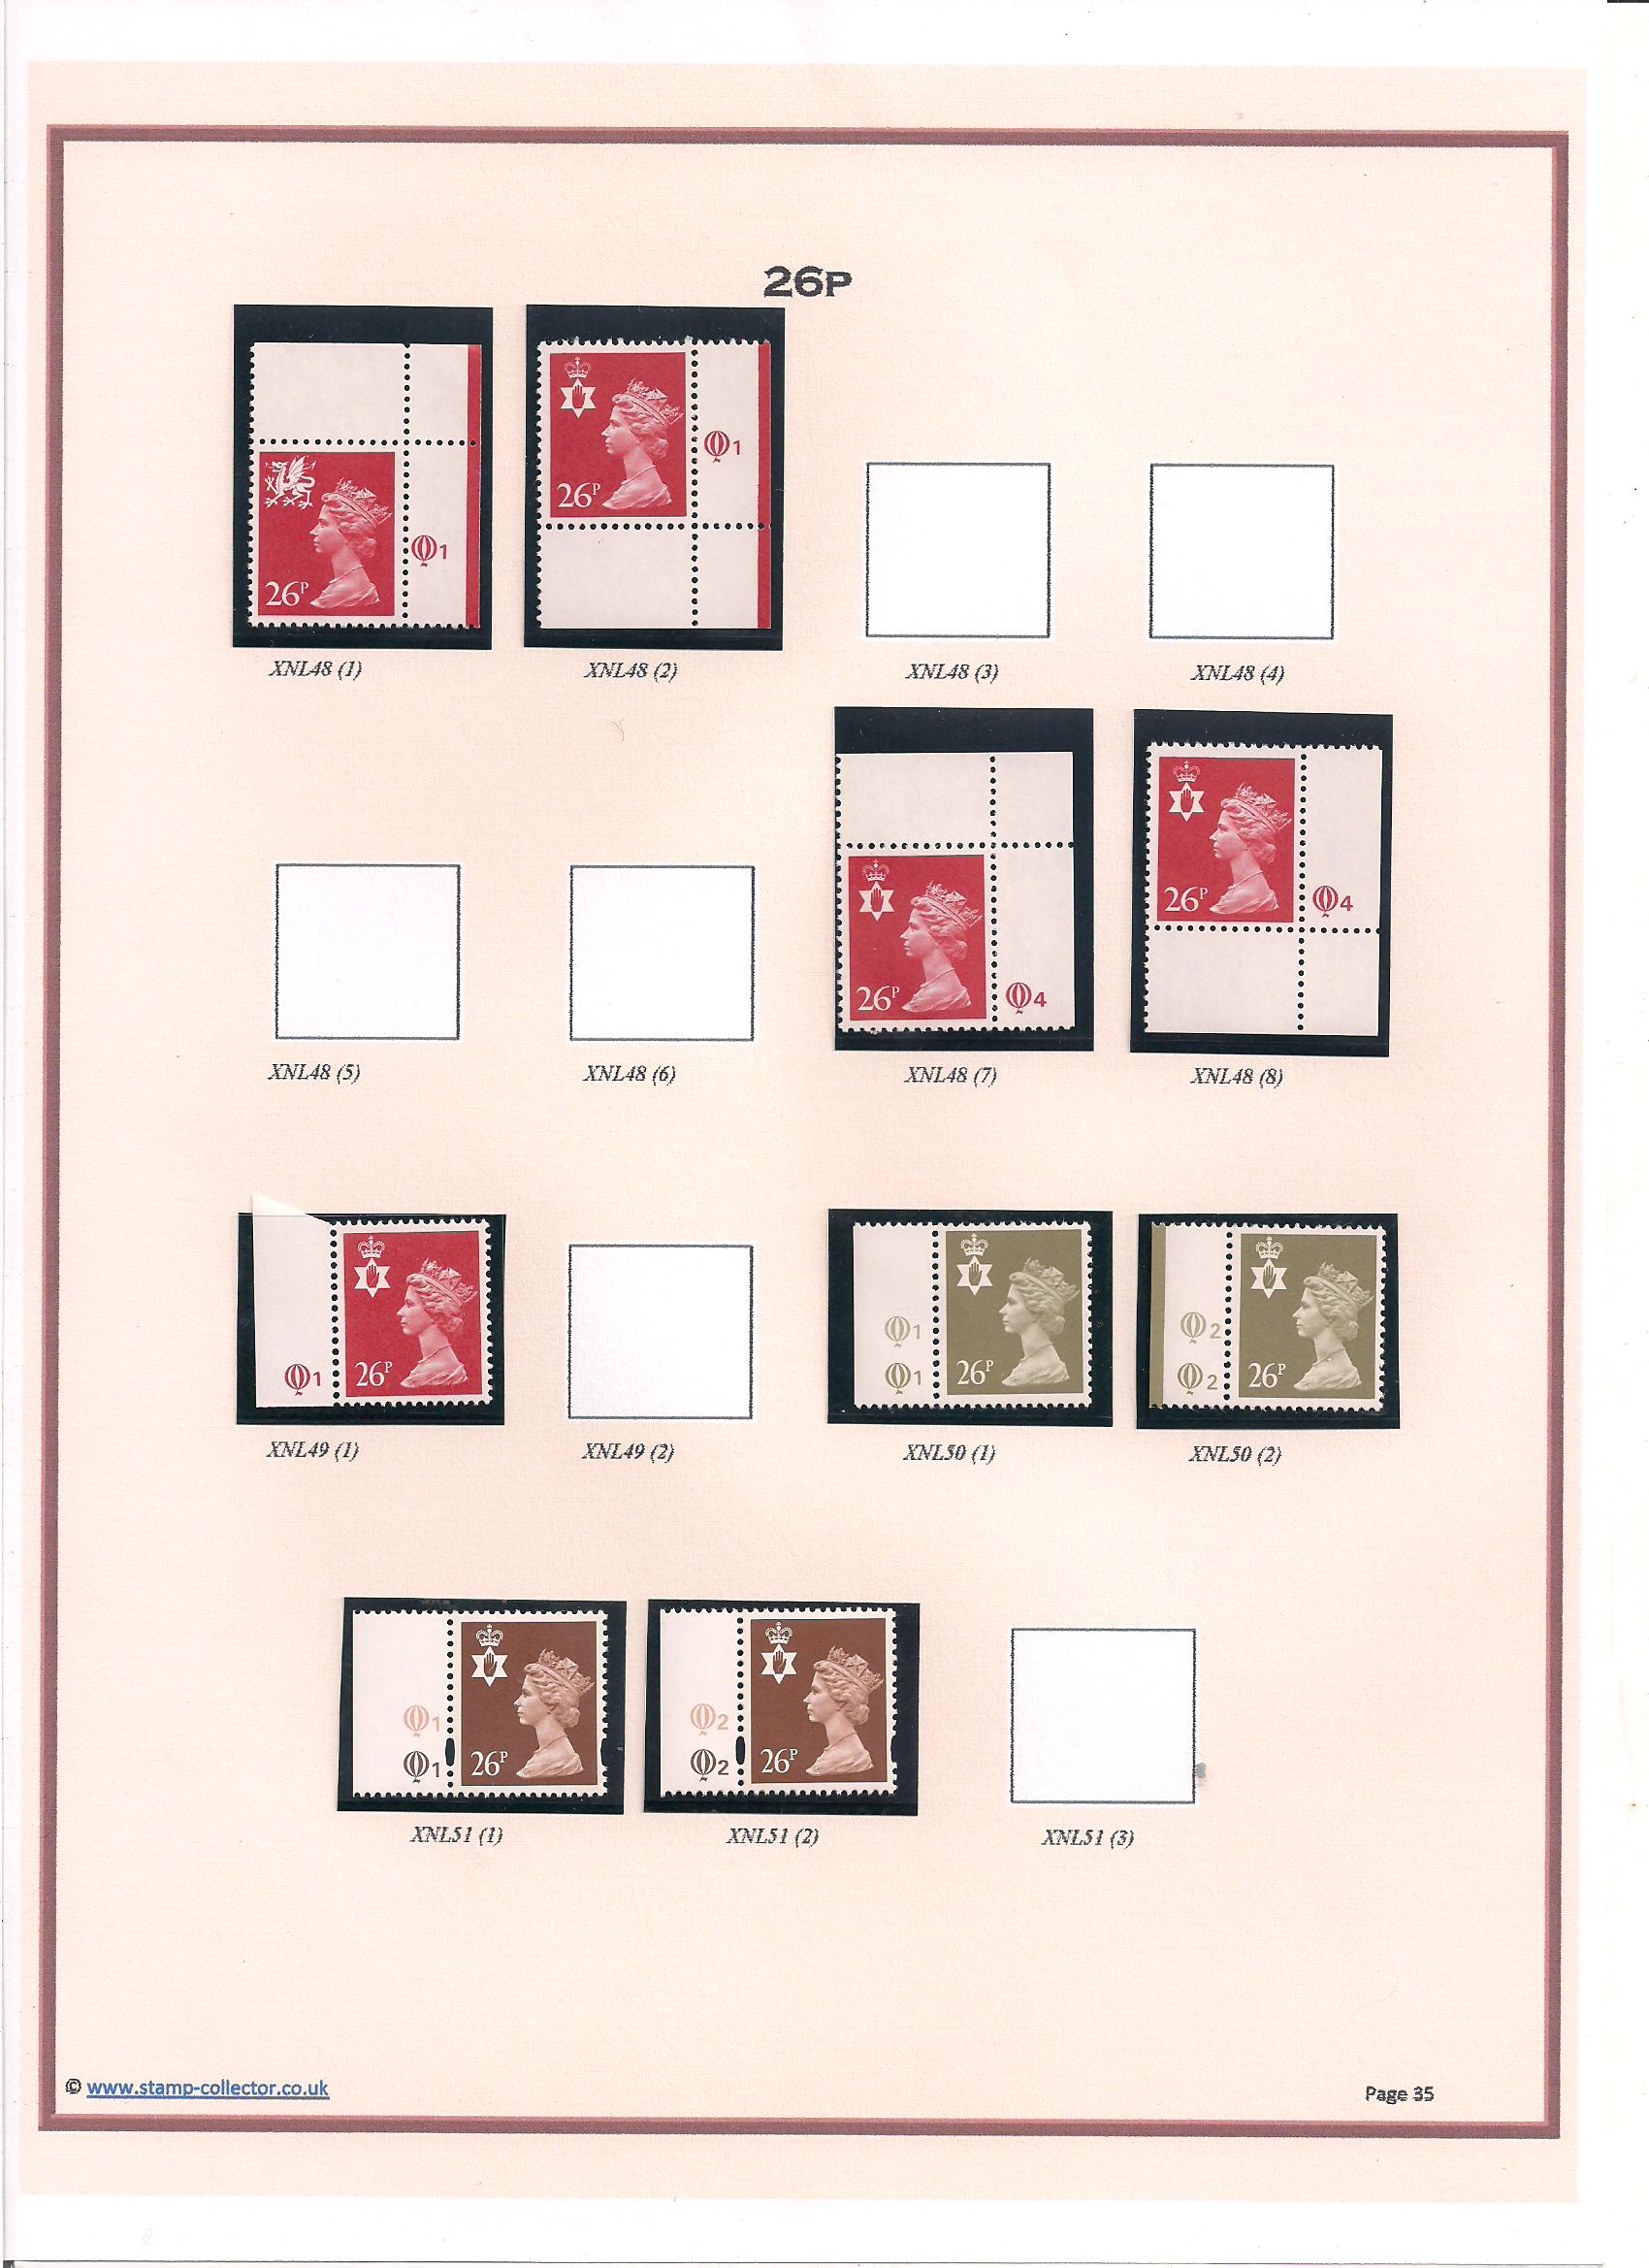 1971-2000 GB - Northern Ireland Cylinder Single Stamp Album